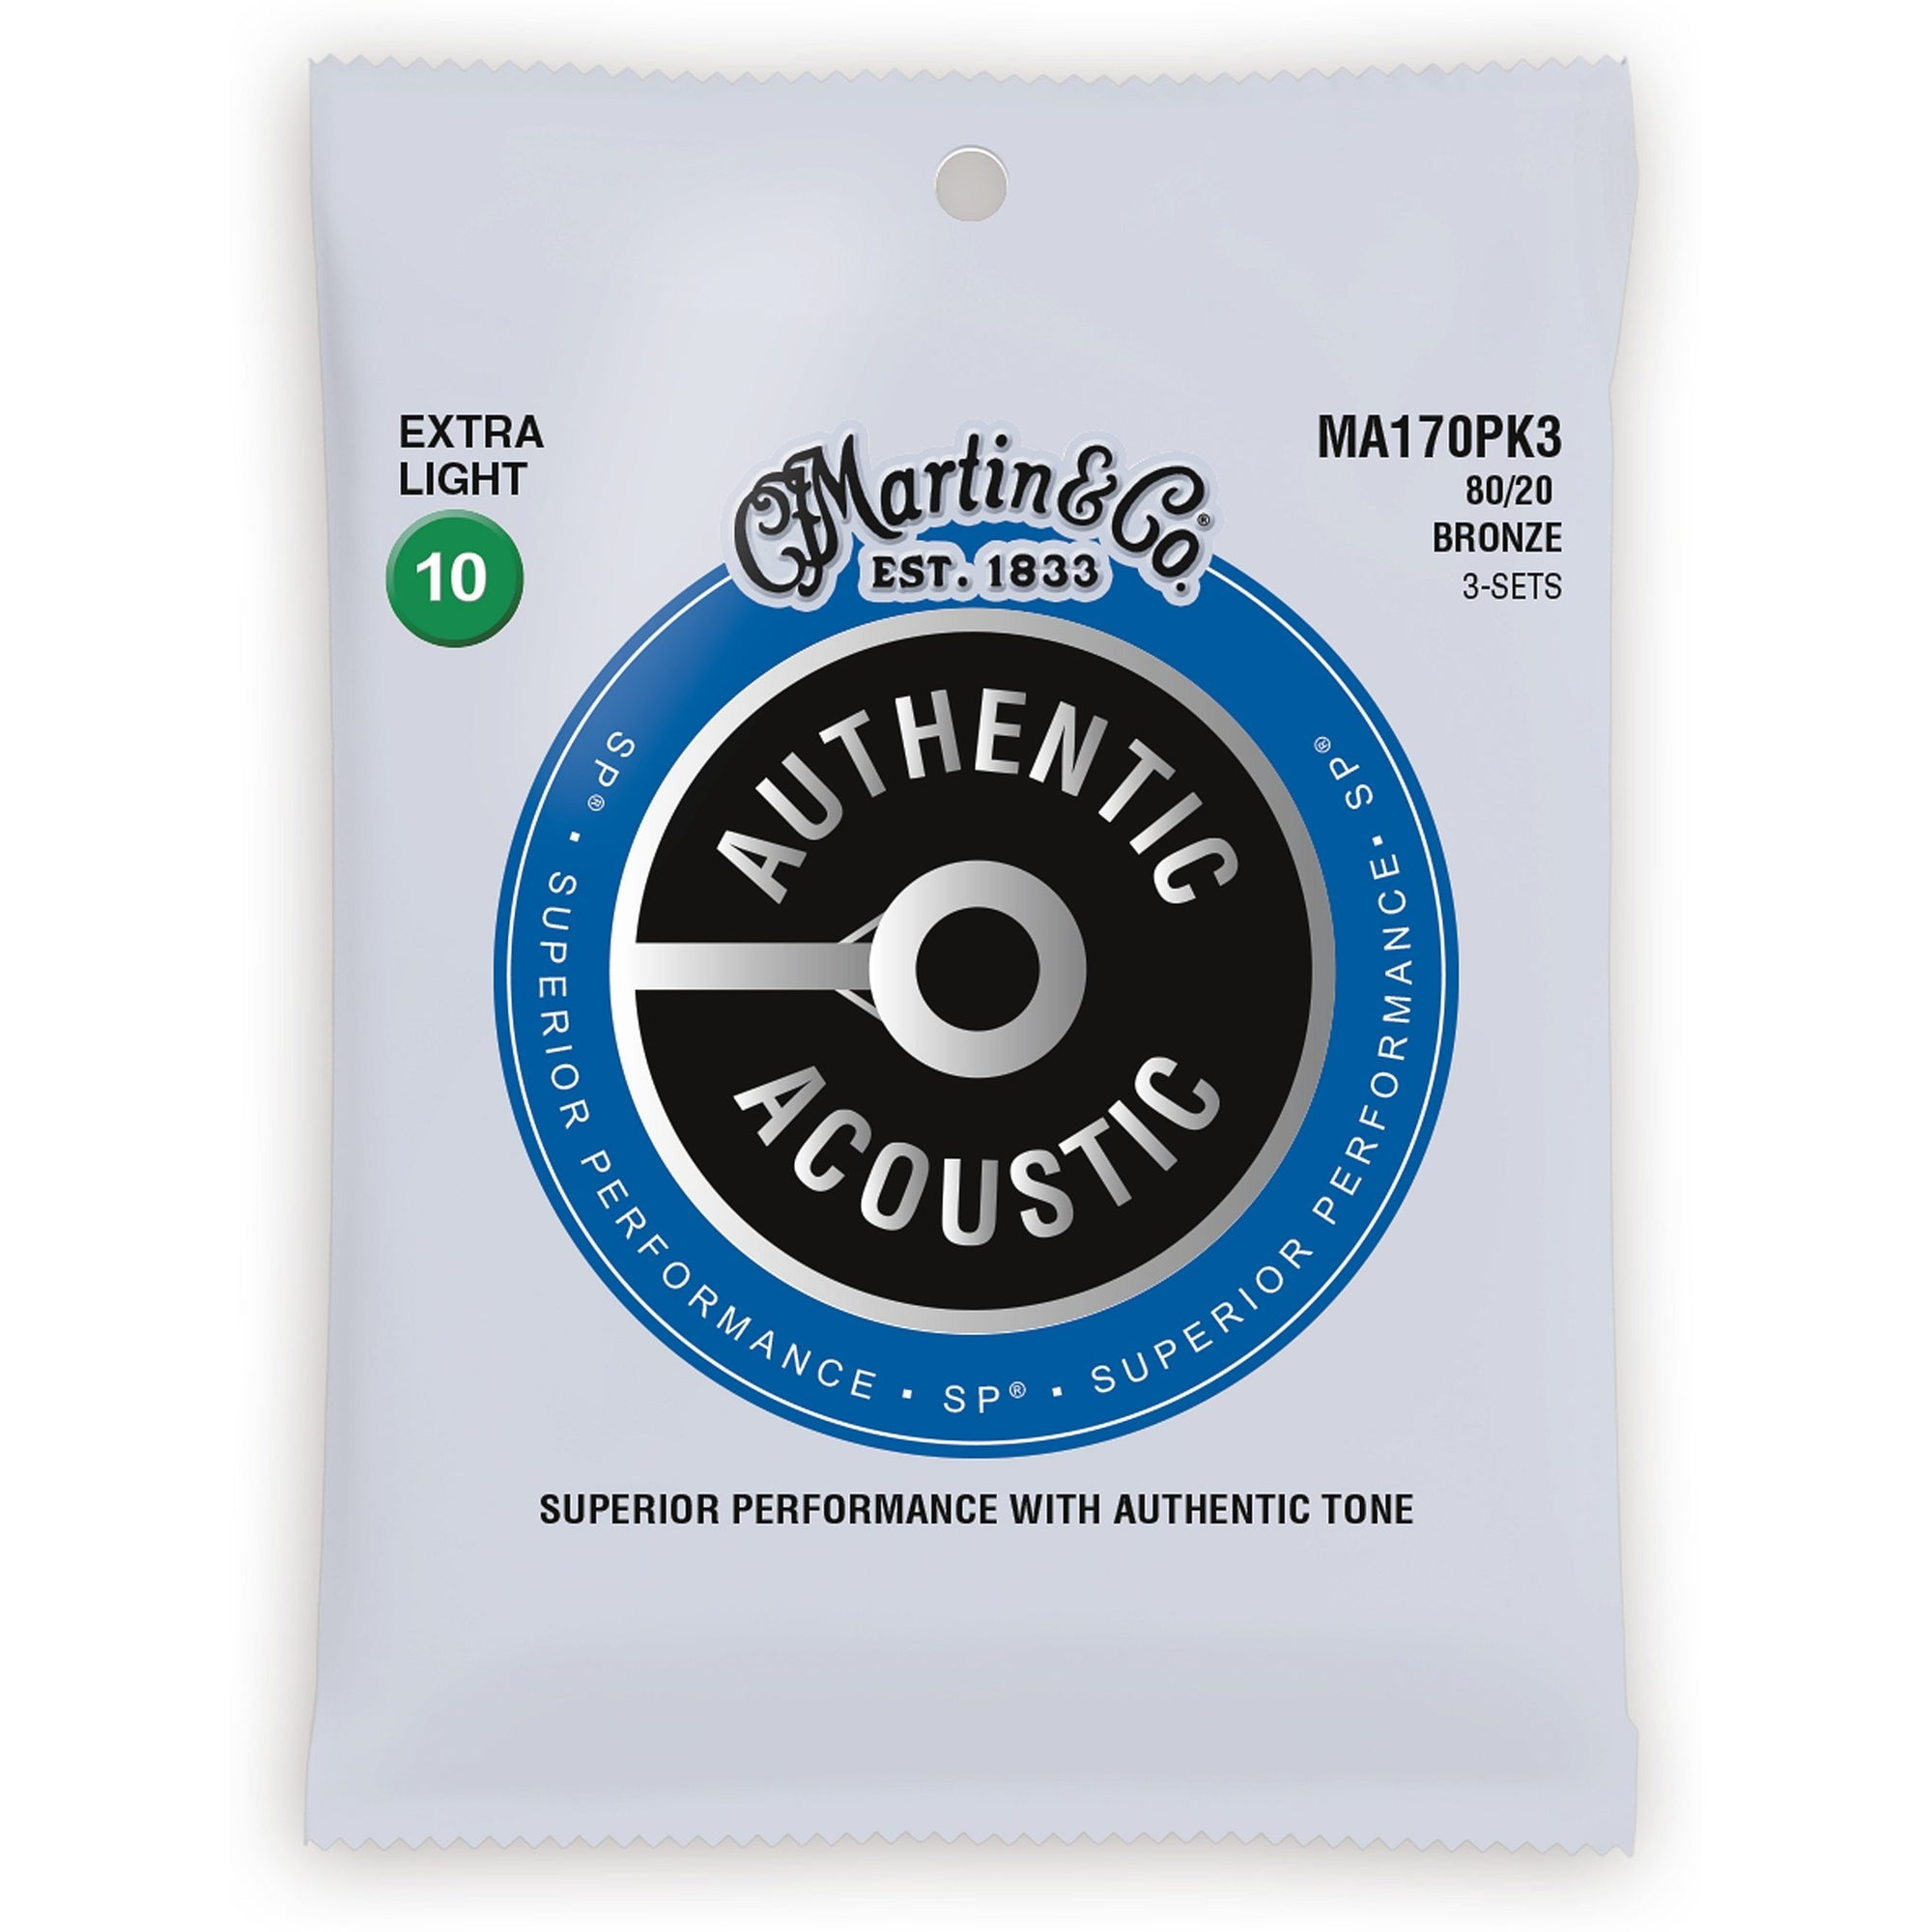 Martin Authentic SP 80/20 Bronze Acoustic Guitar Strings, MA170, 3-Pack, Extra Light